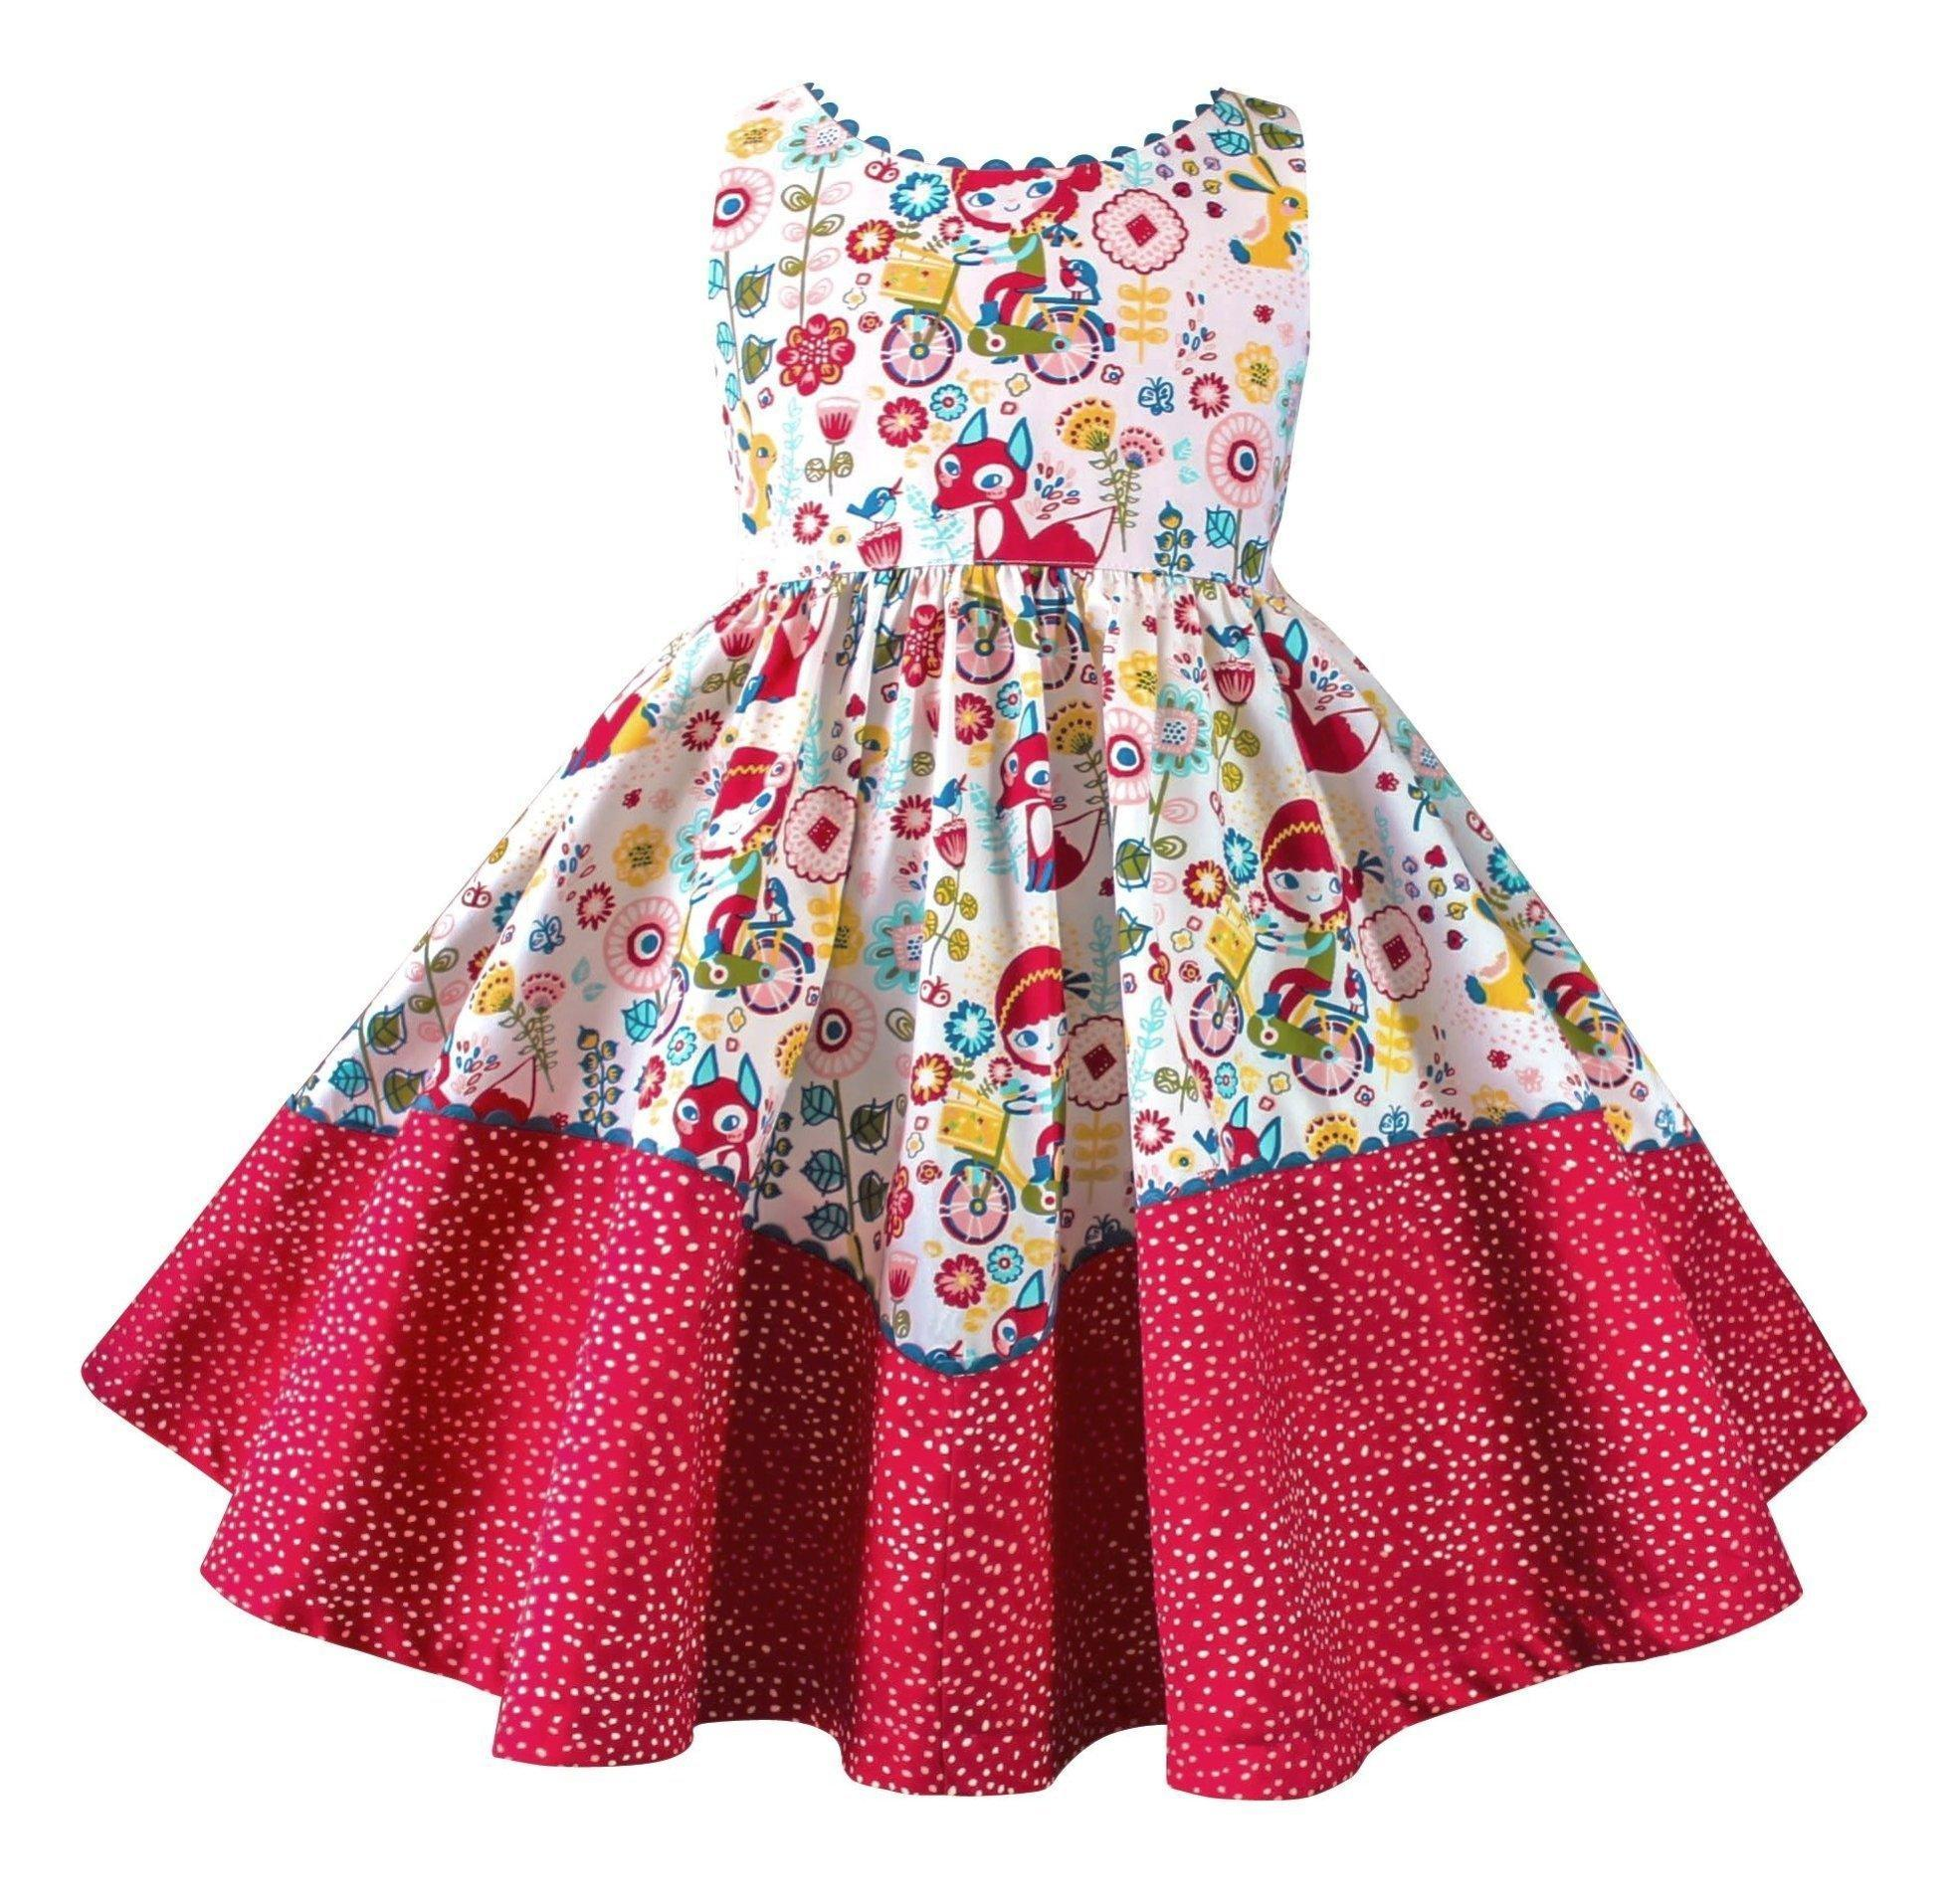 7b3772f9fed Shop for Girls Boutique Dresses at Little Miss Marmalade  1940s ...